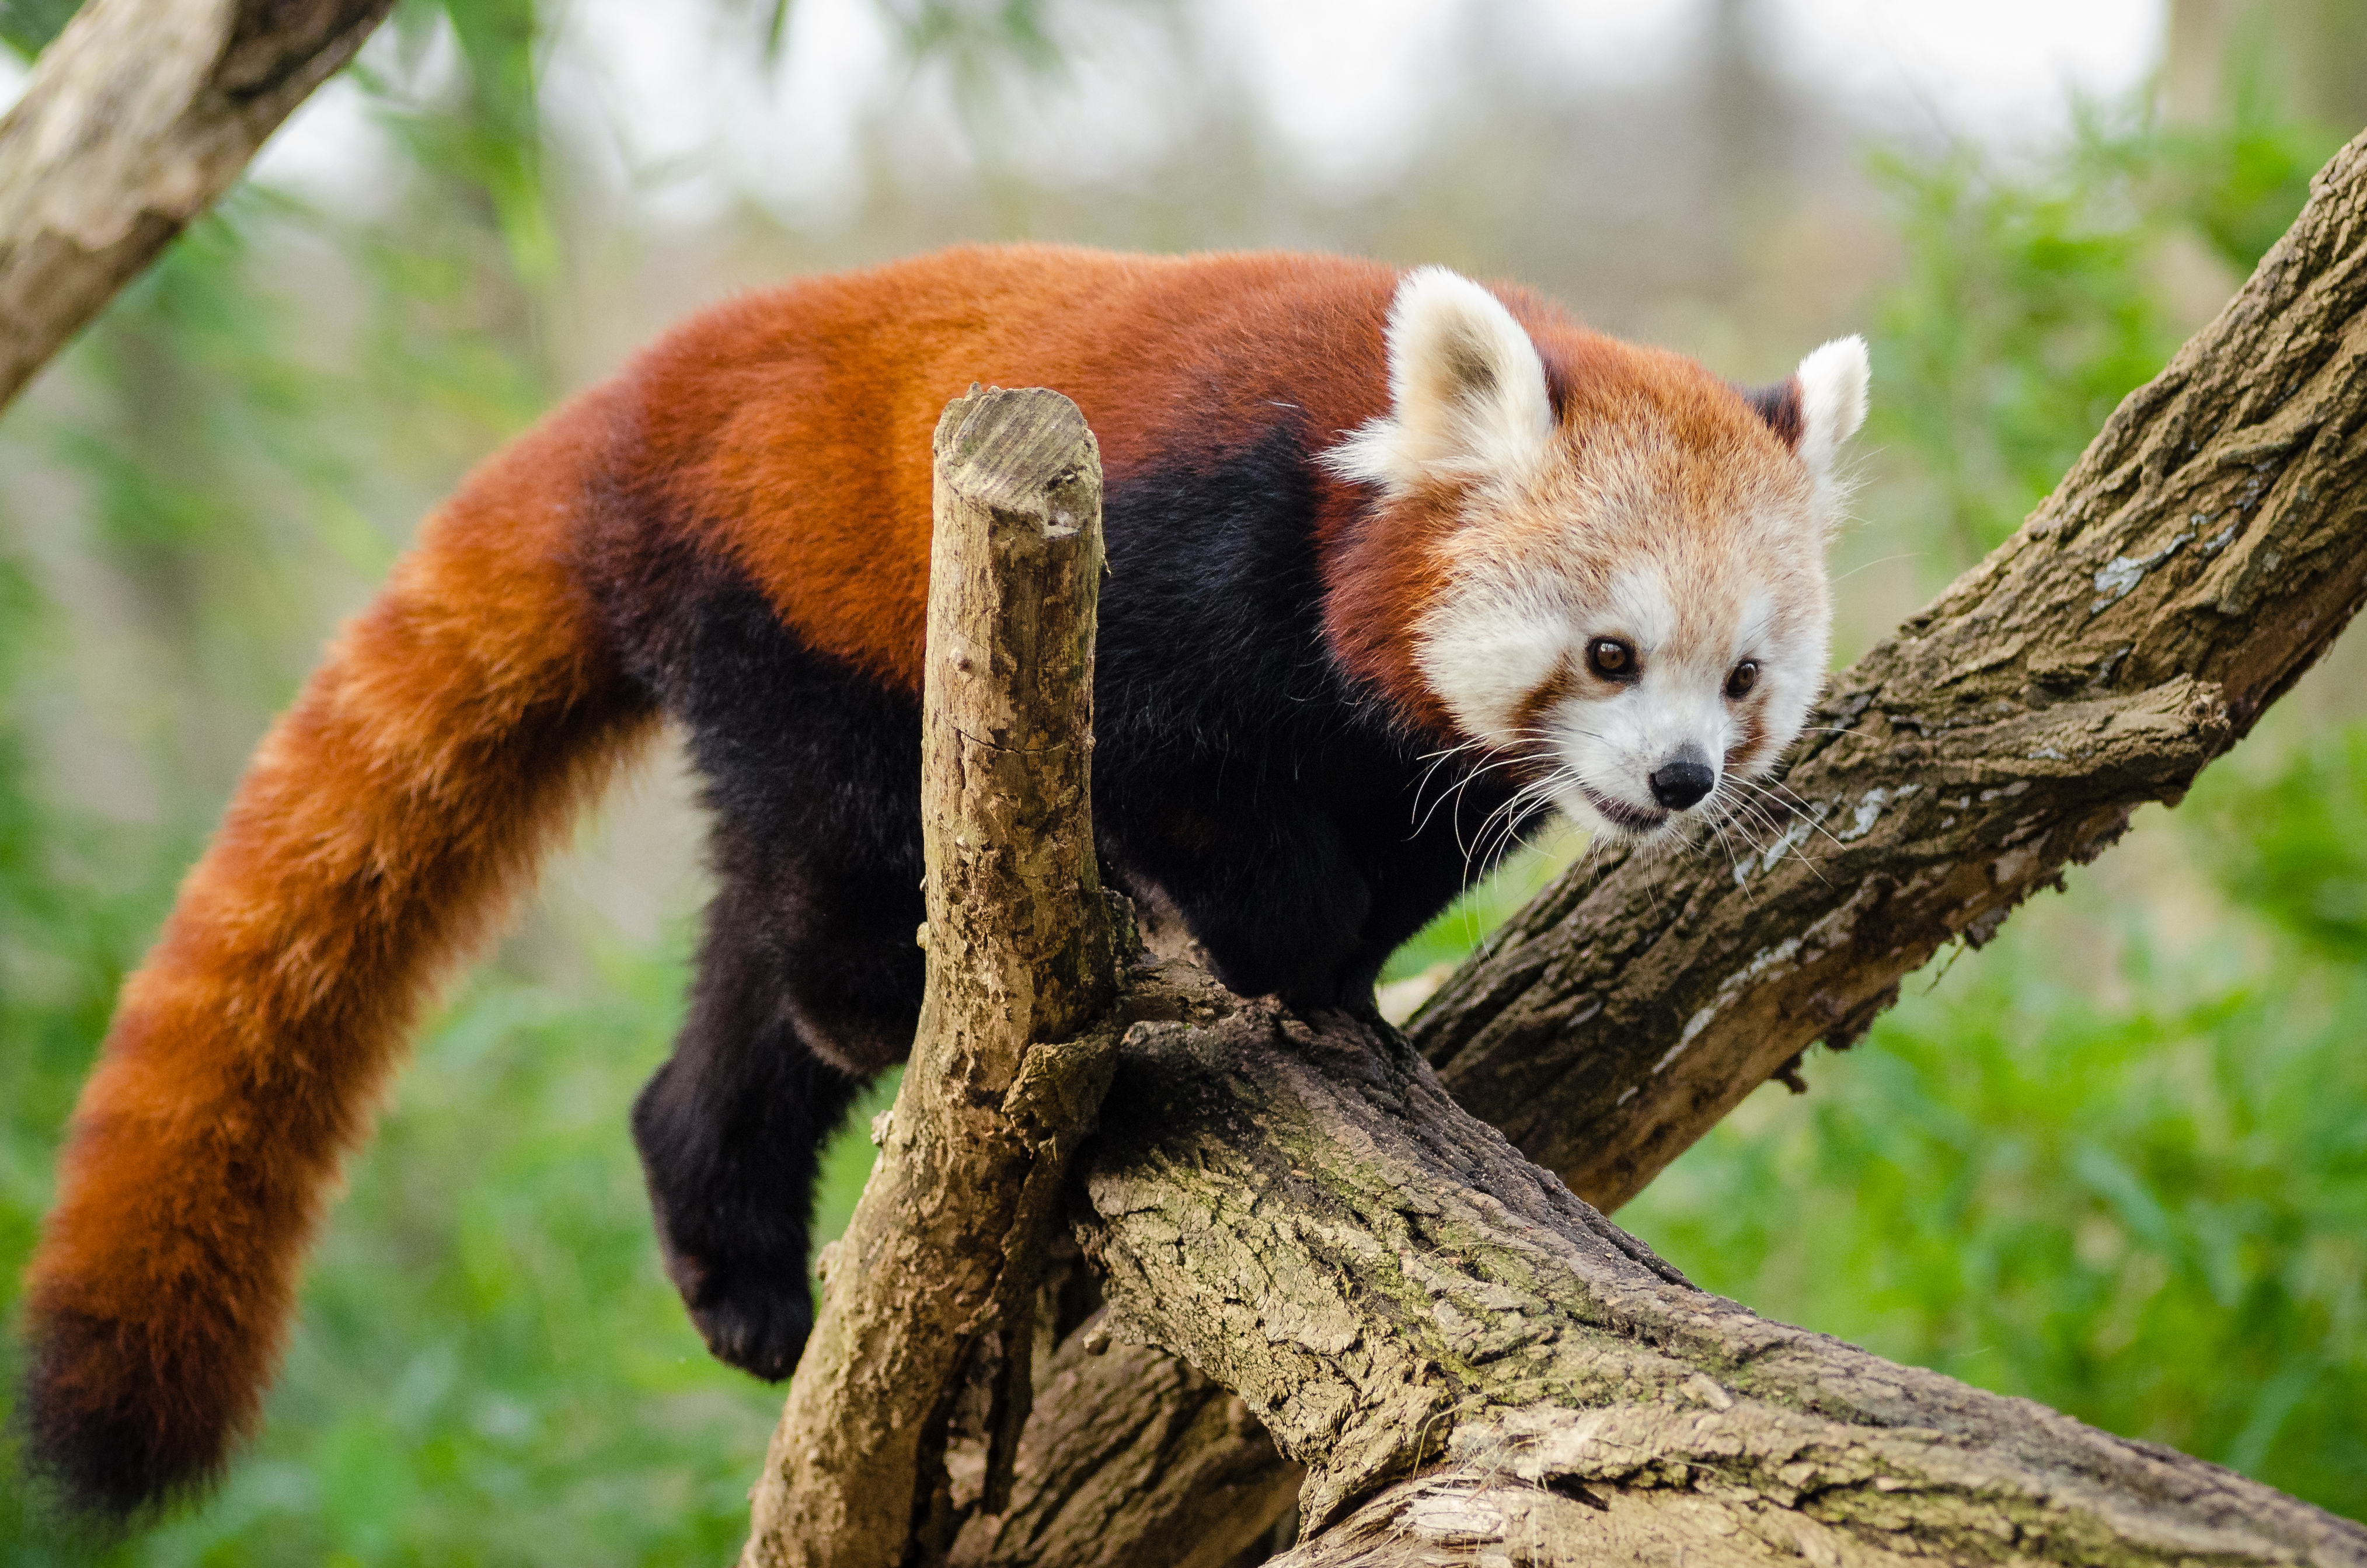 Cute Dog Pictures For Wallpaper Red Panda Sleeping On Tree Branch 183 Free Stock Photo